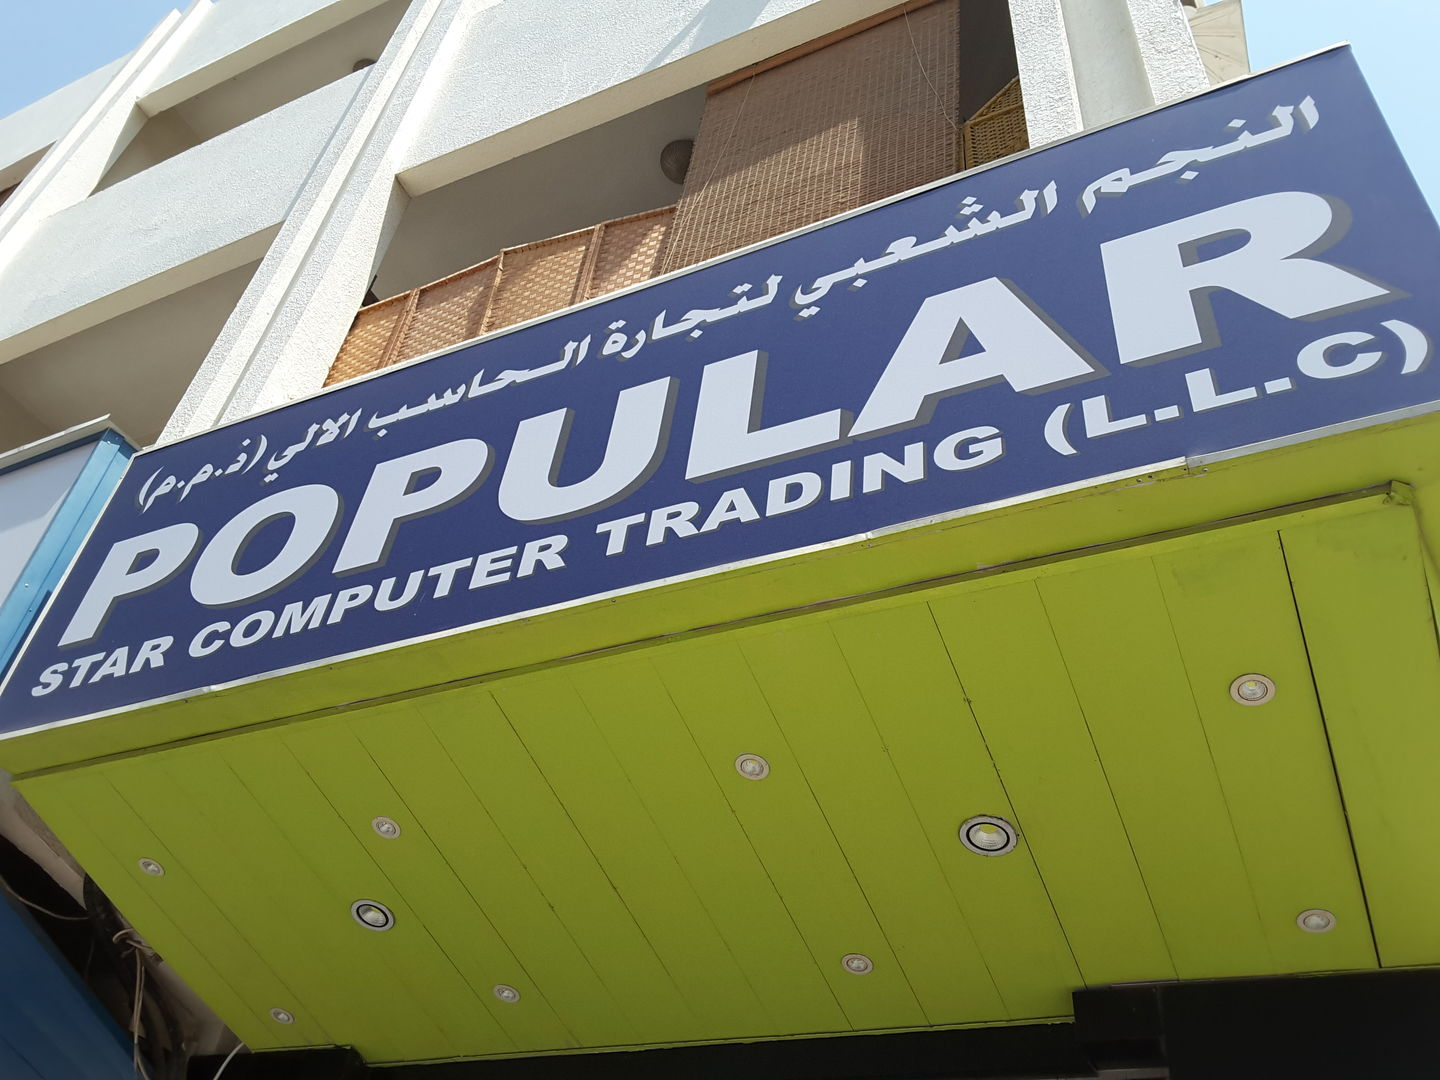 Walif-business-popular-star-computer-trading